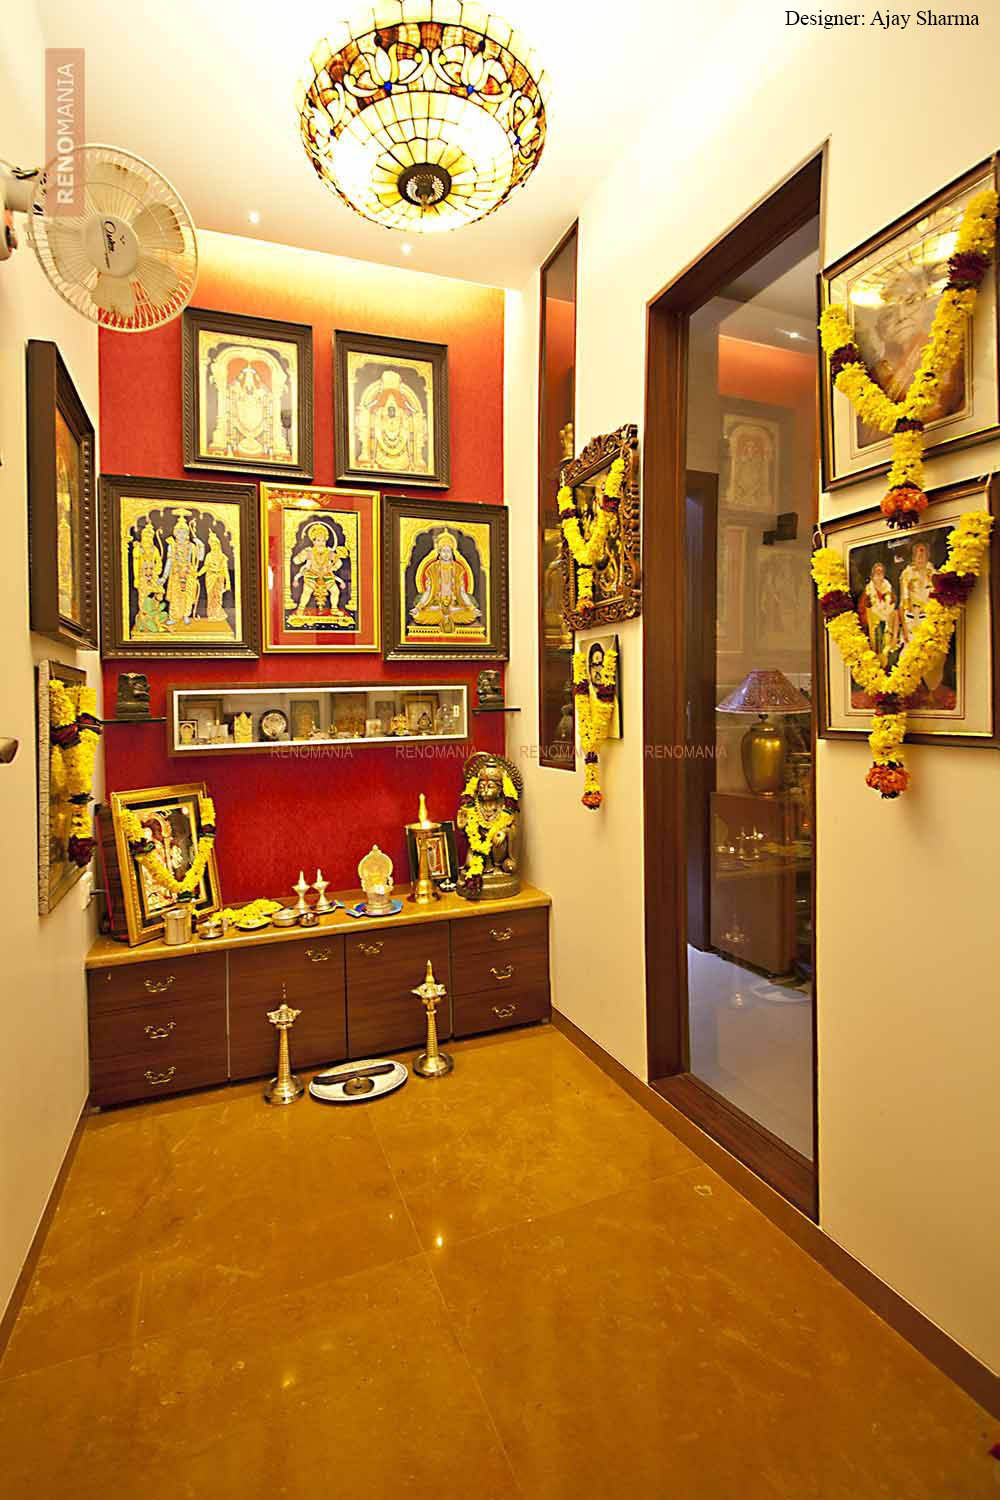 Lamps doors vastu idols placement pooja room ideas pooja room - Bright Coloured Puja Room With Lots Of Idols And Wooden Cabinets